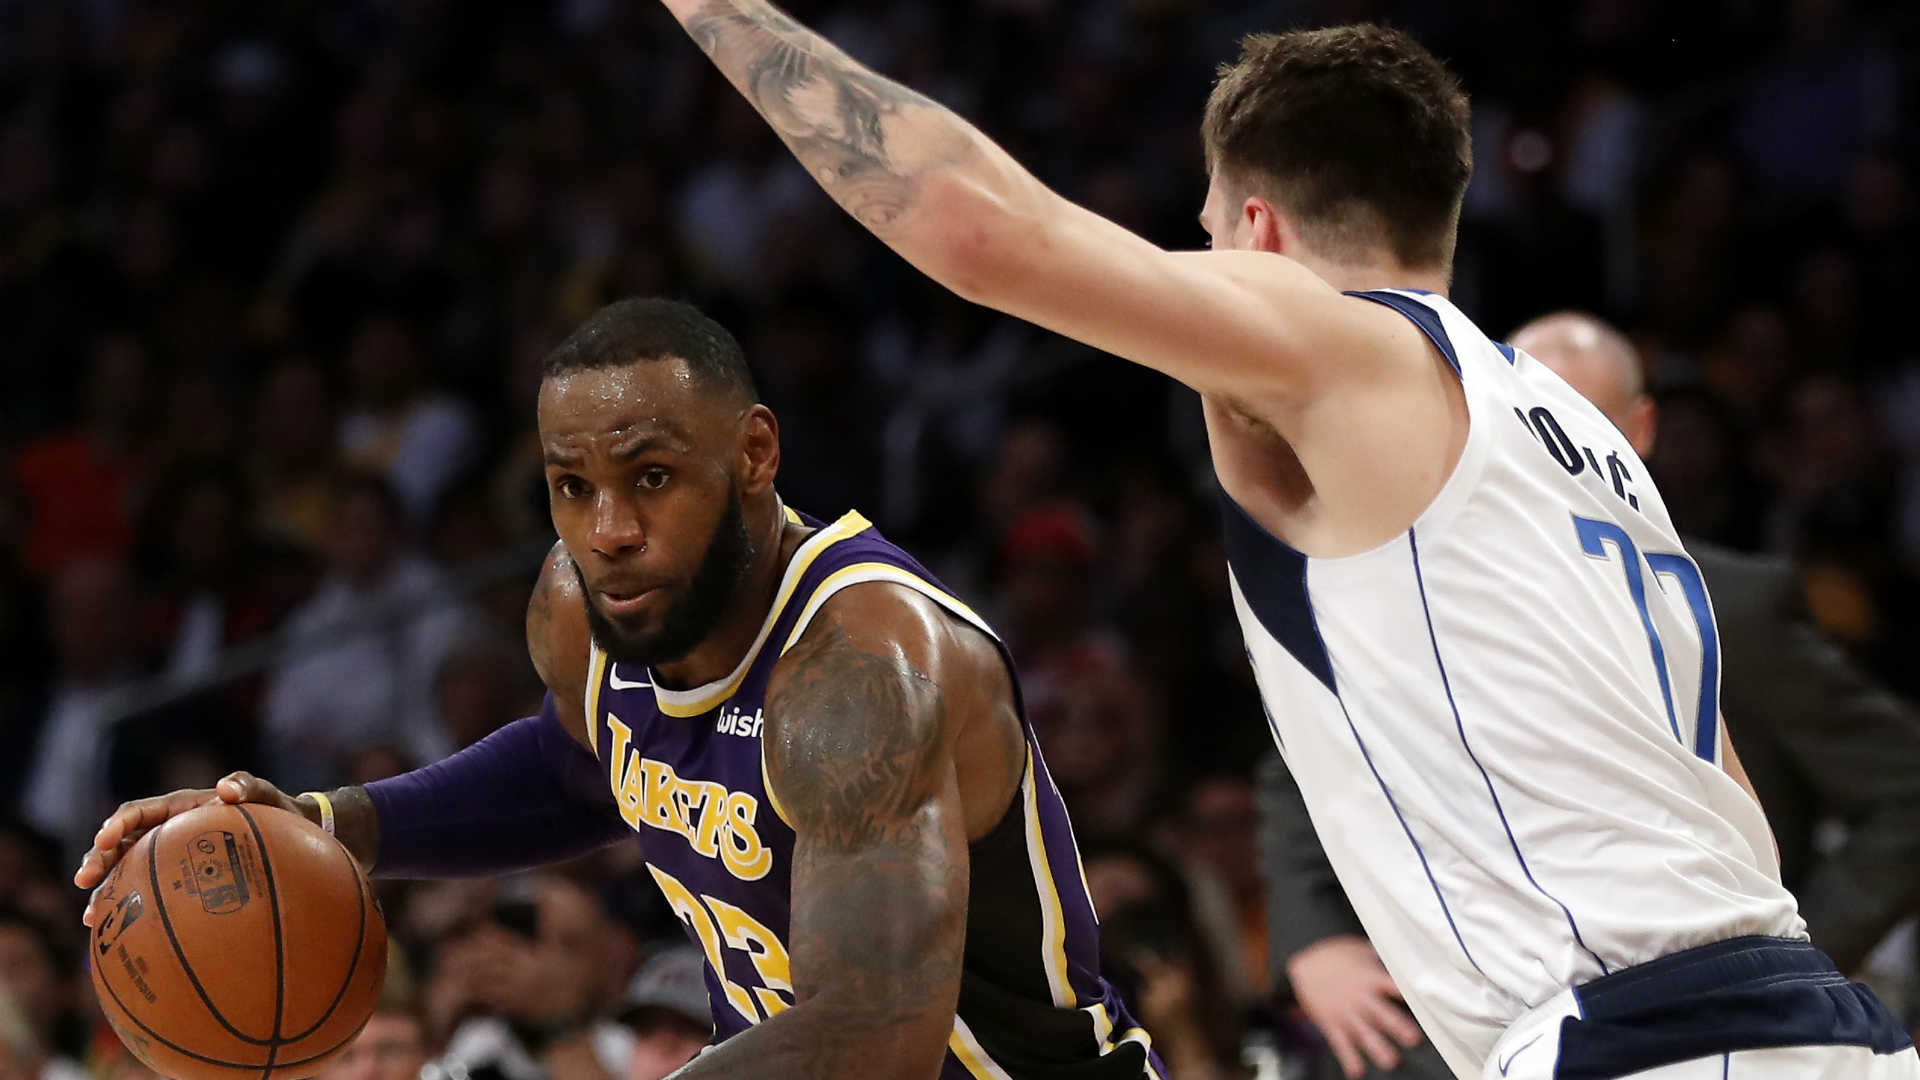 LeBron says Magic, Walton drama 'not a big deal for us'